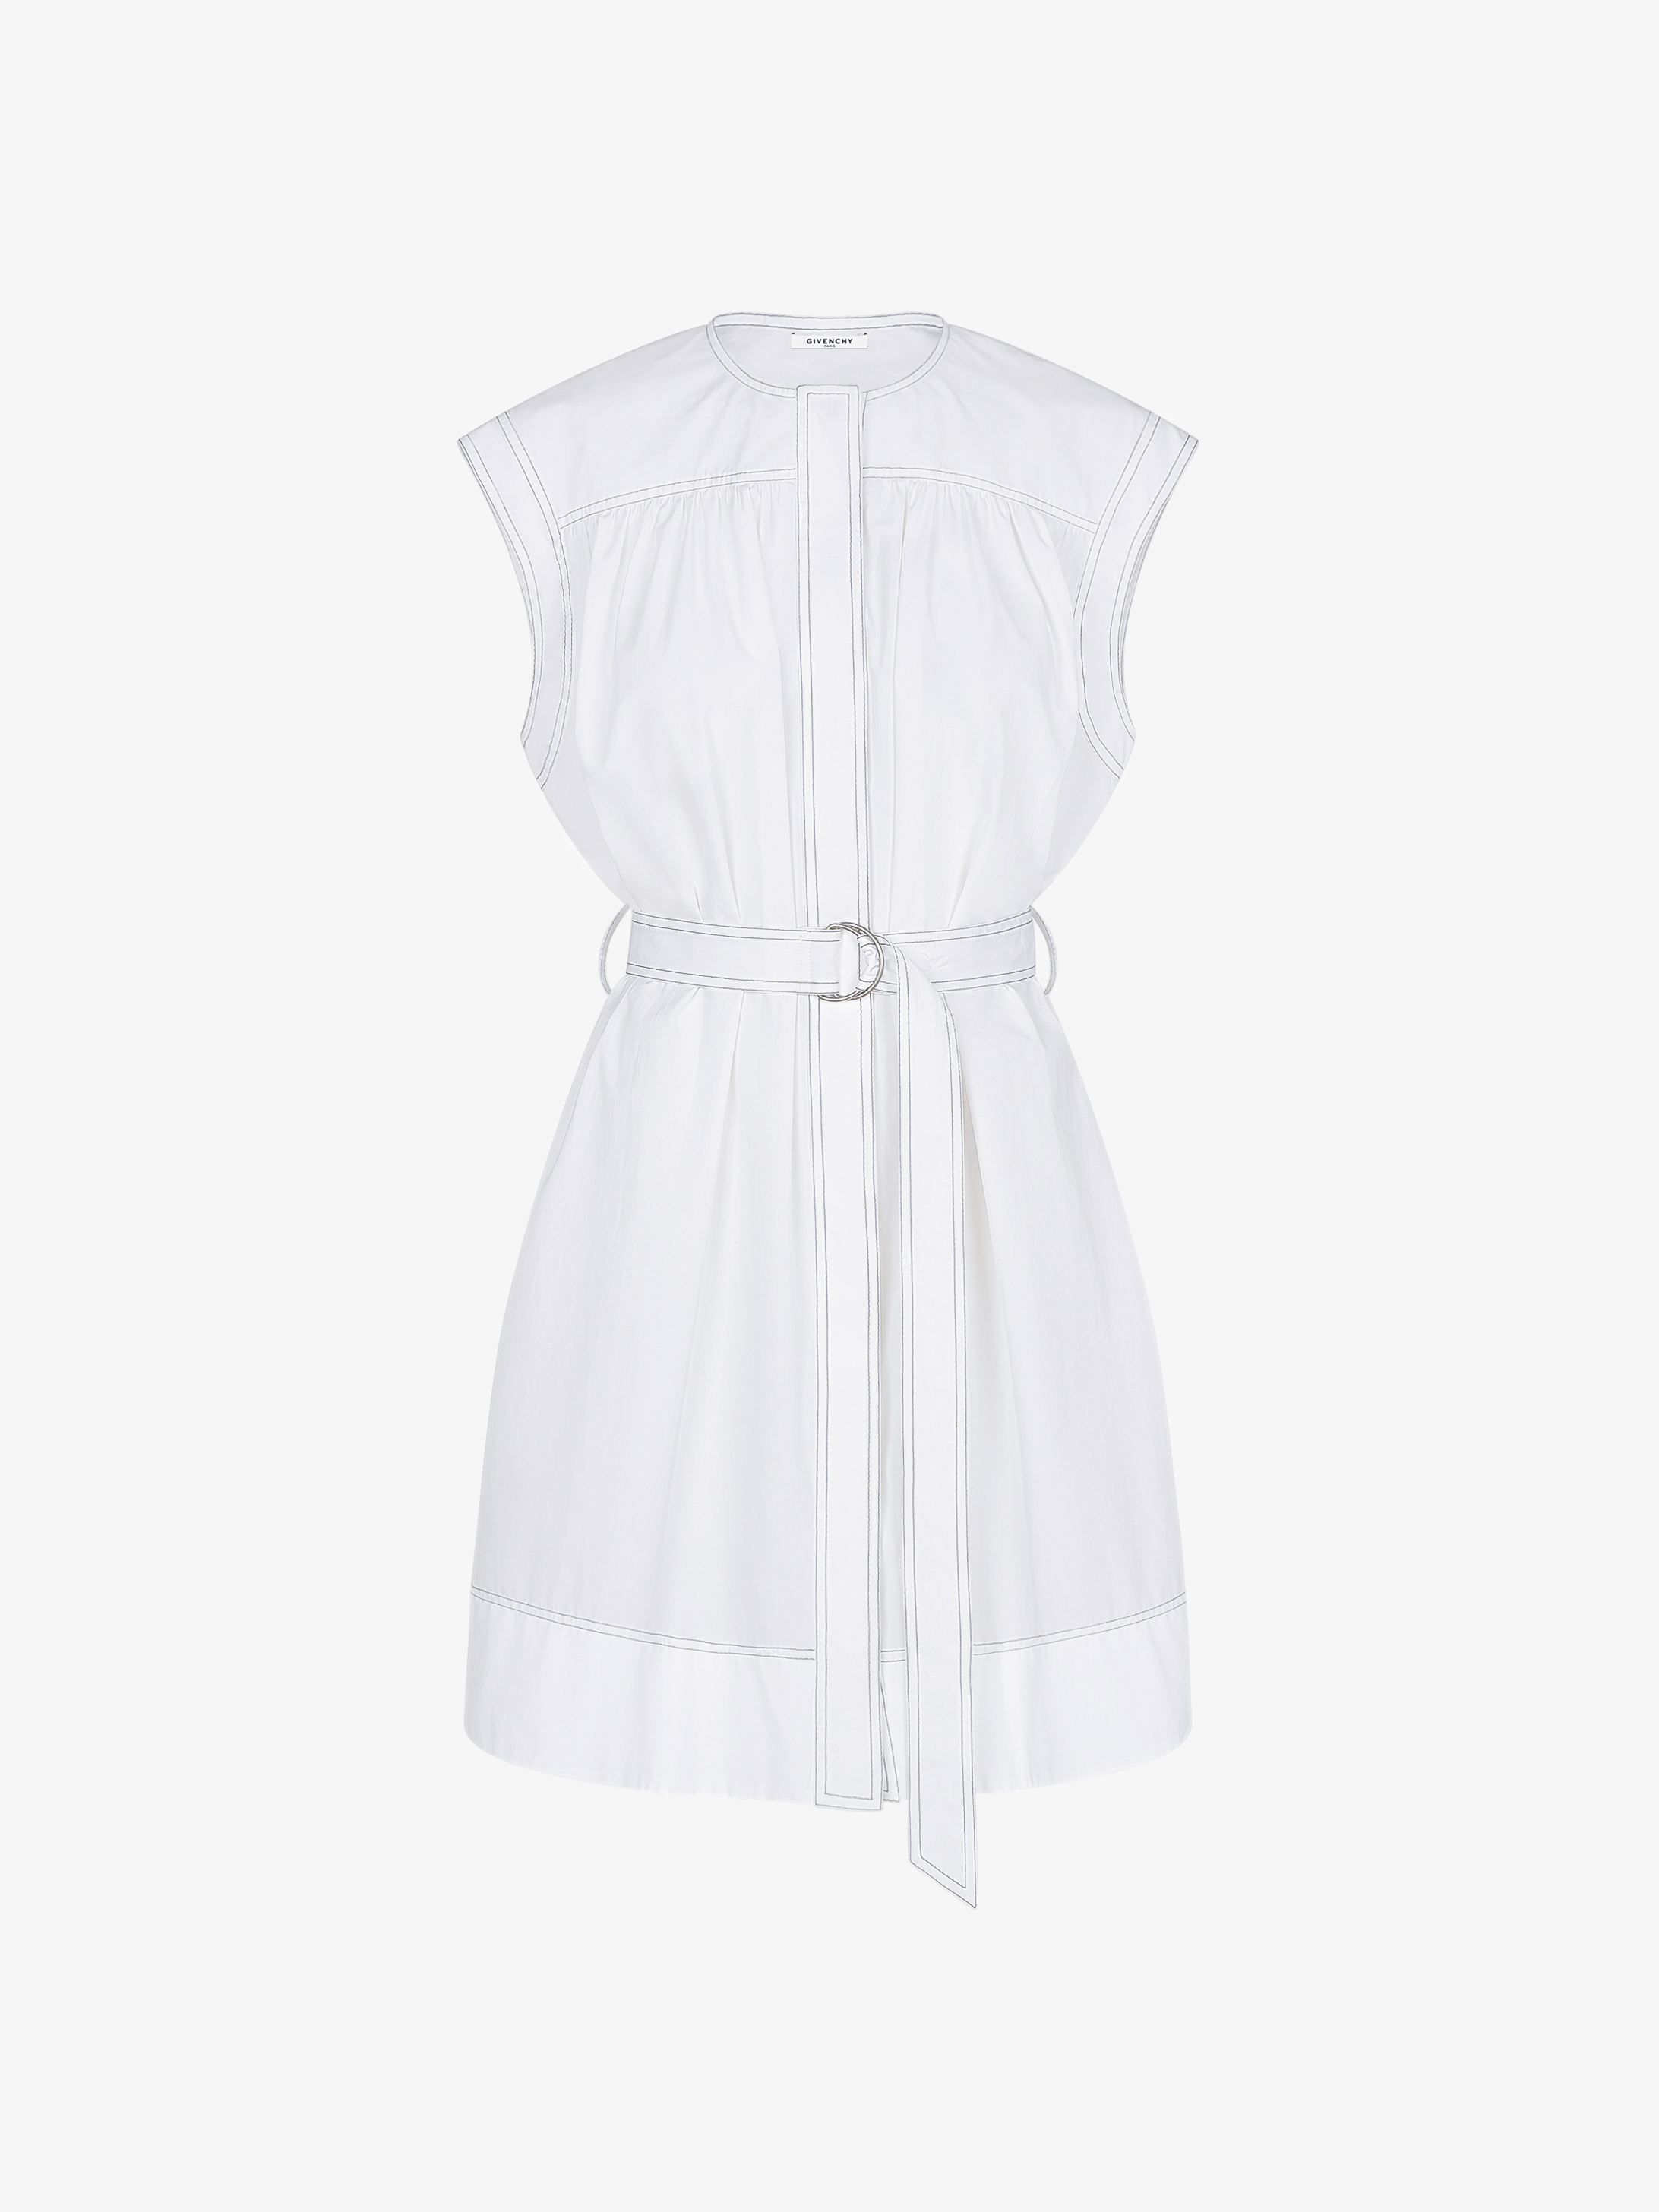 Sleeveless shirt dress with contrasting stitching